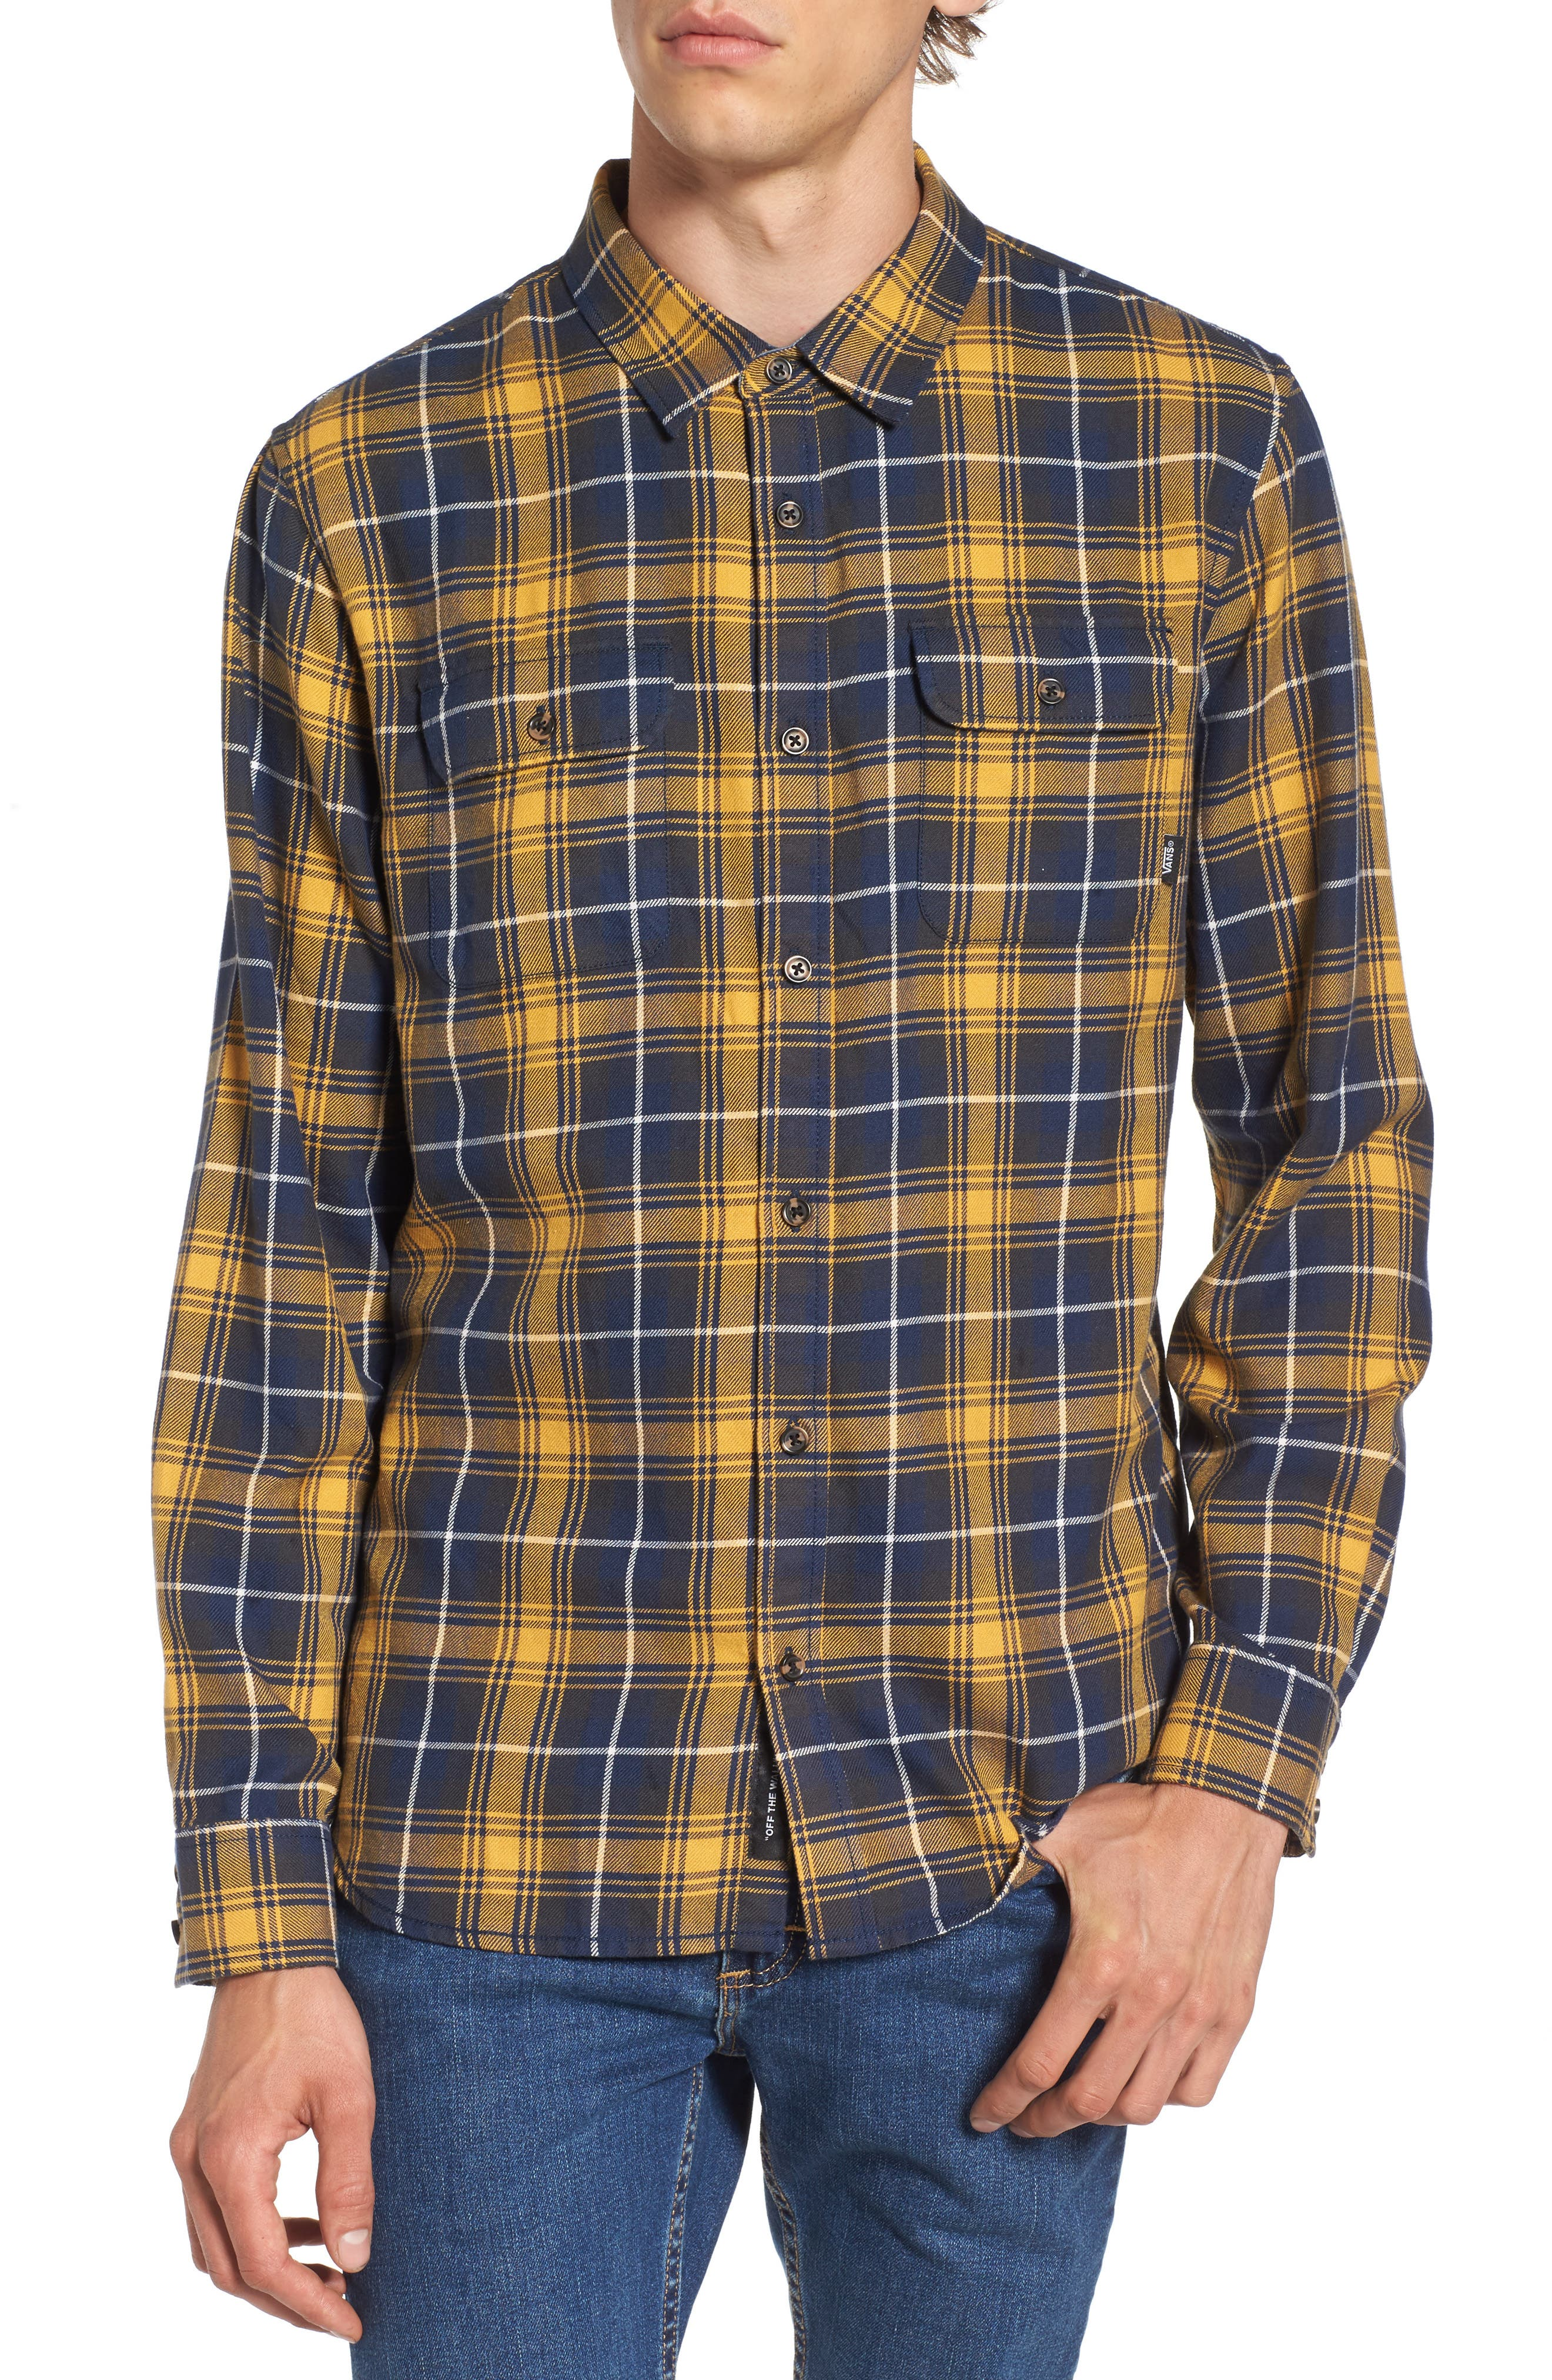 Main Image - Vans Sycamore Plaid Flannel Sport Shirt